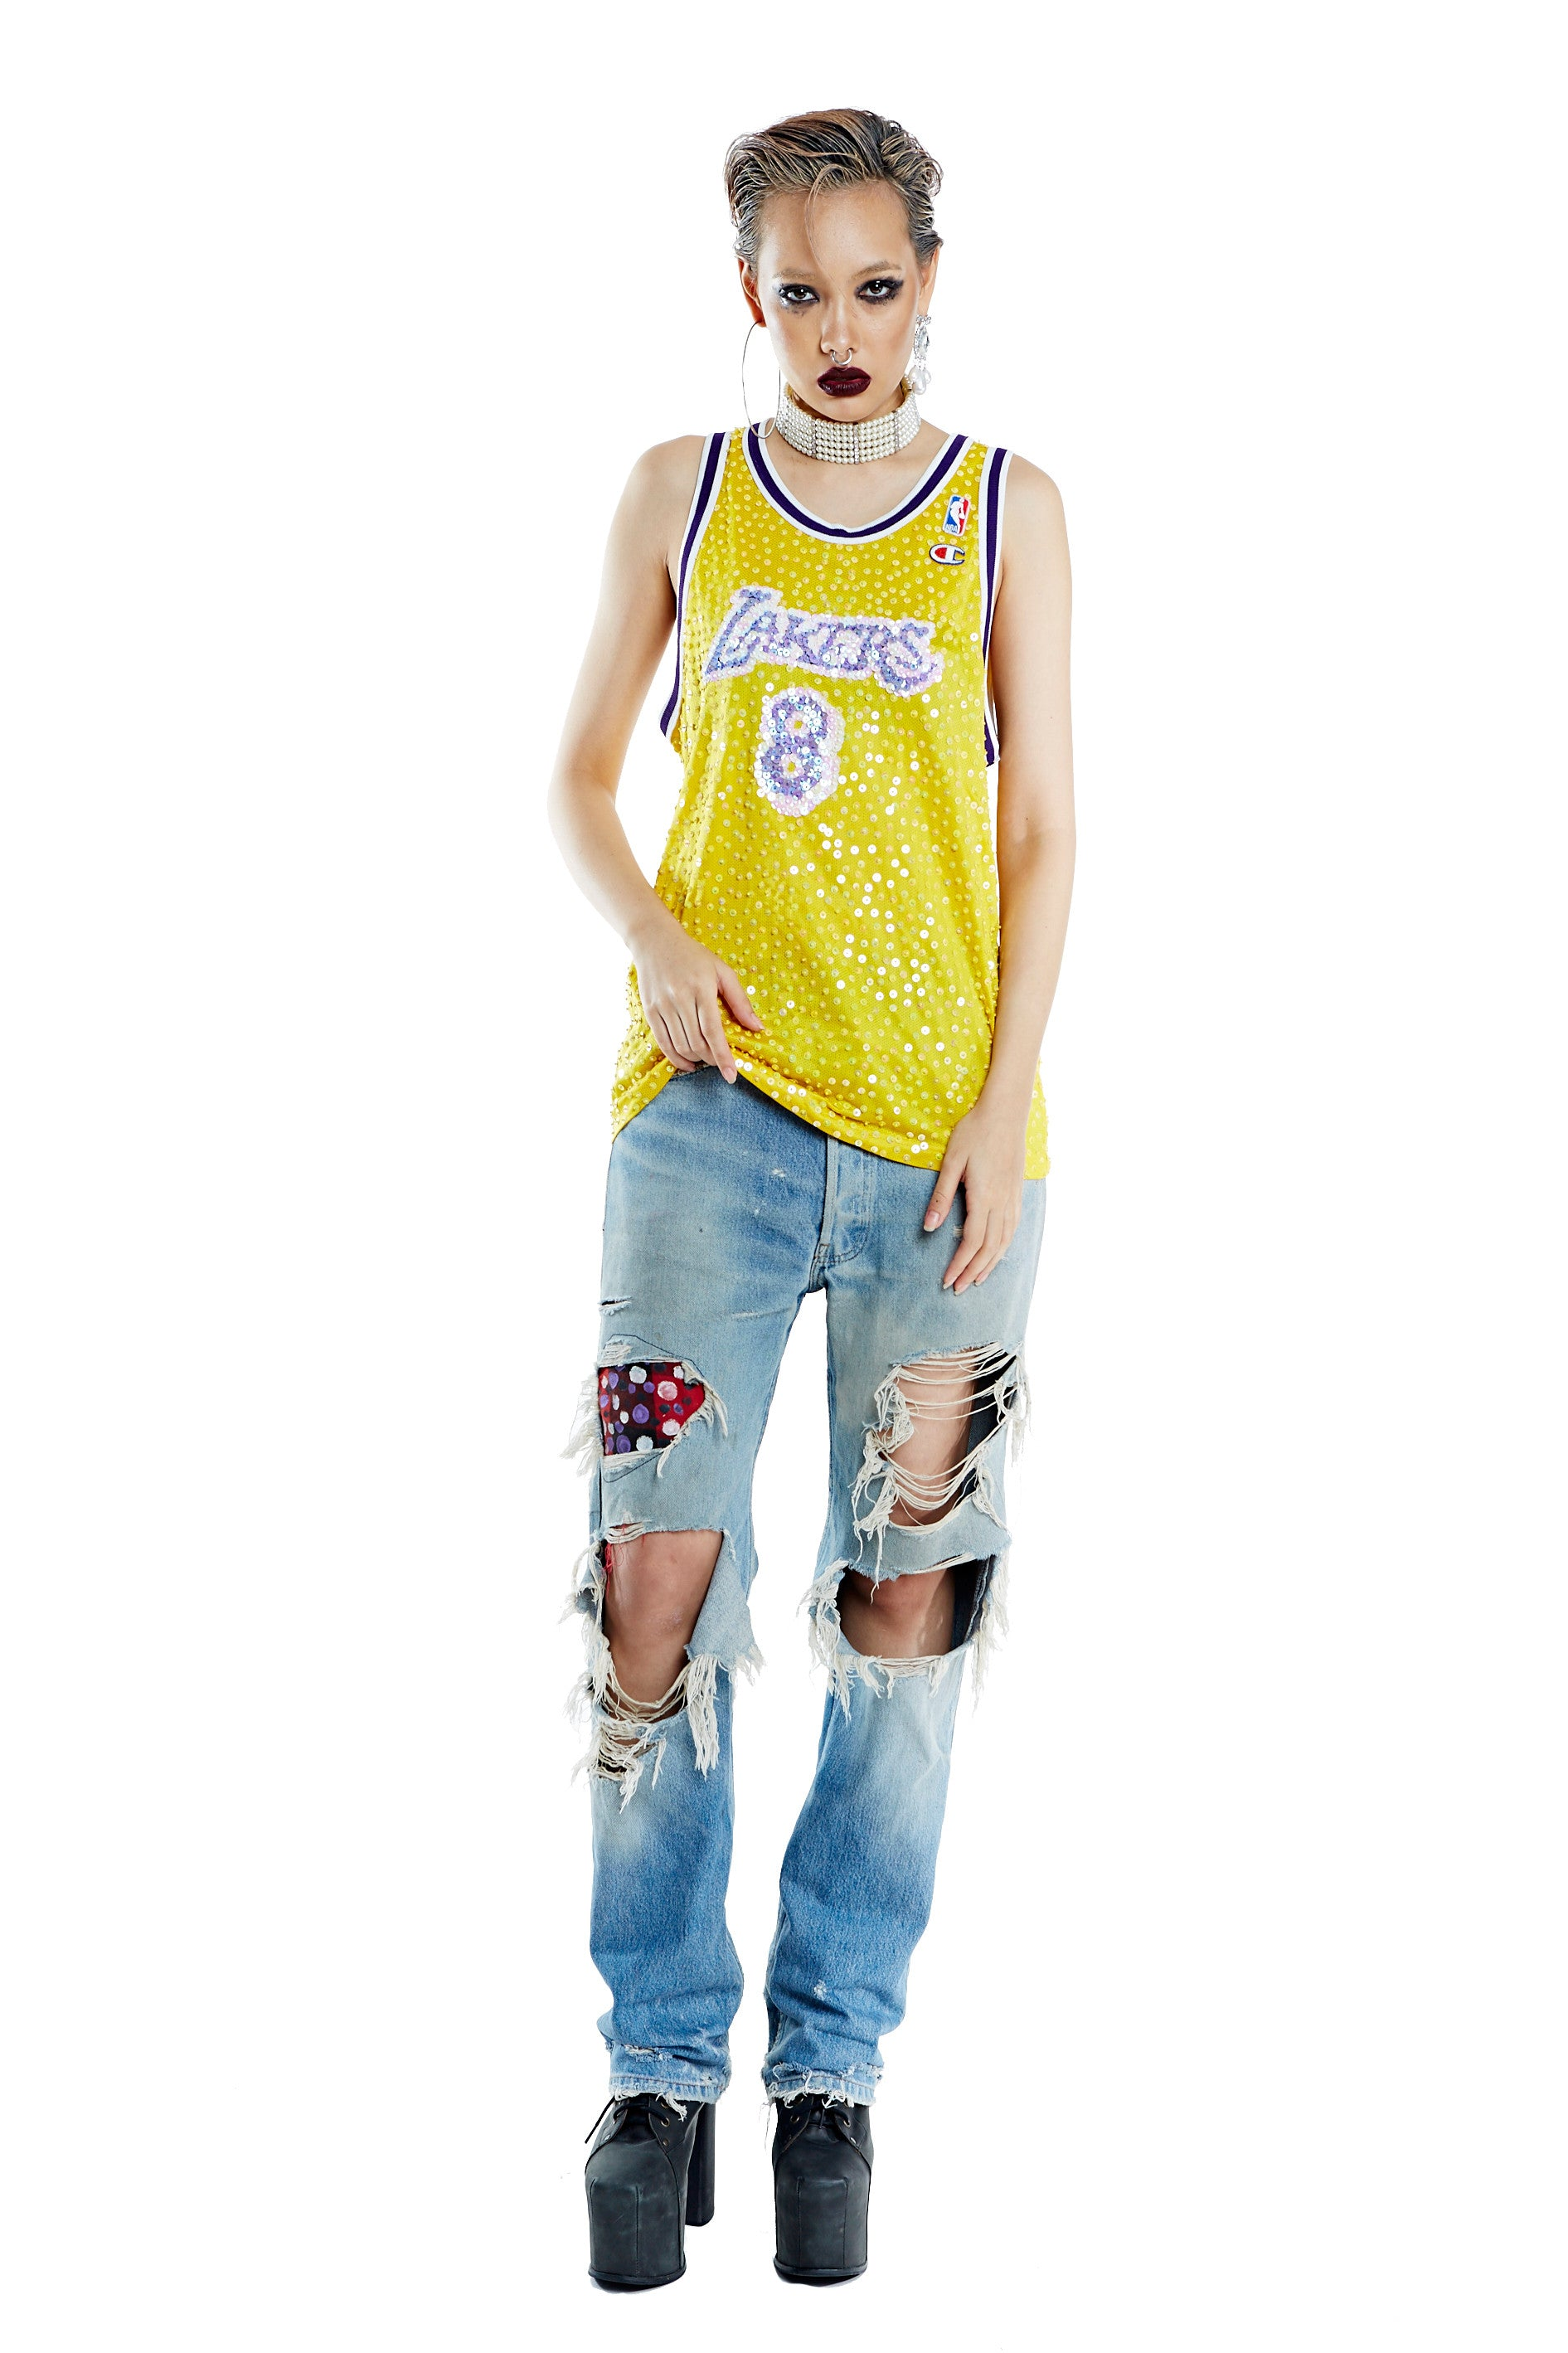 Lakers Yellow Jersey - '8' - I LOVE DIY by Panida